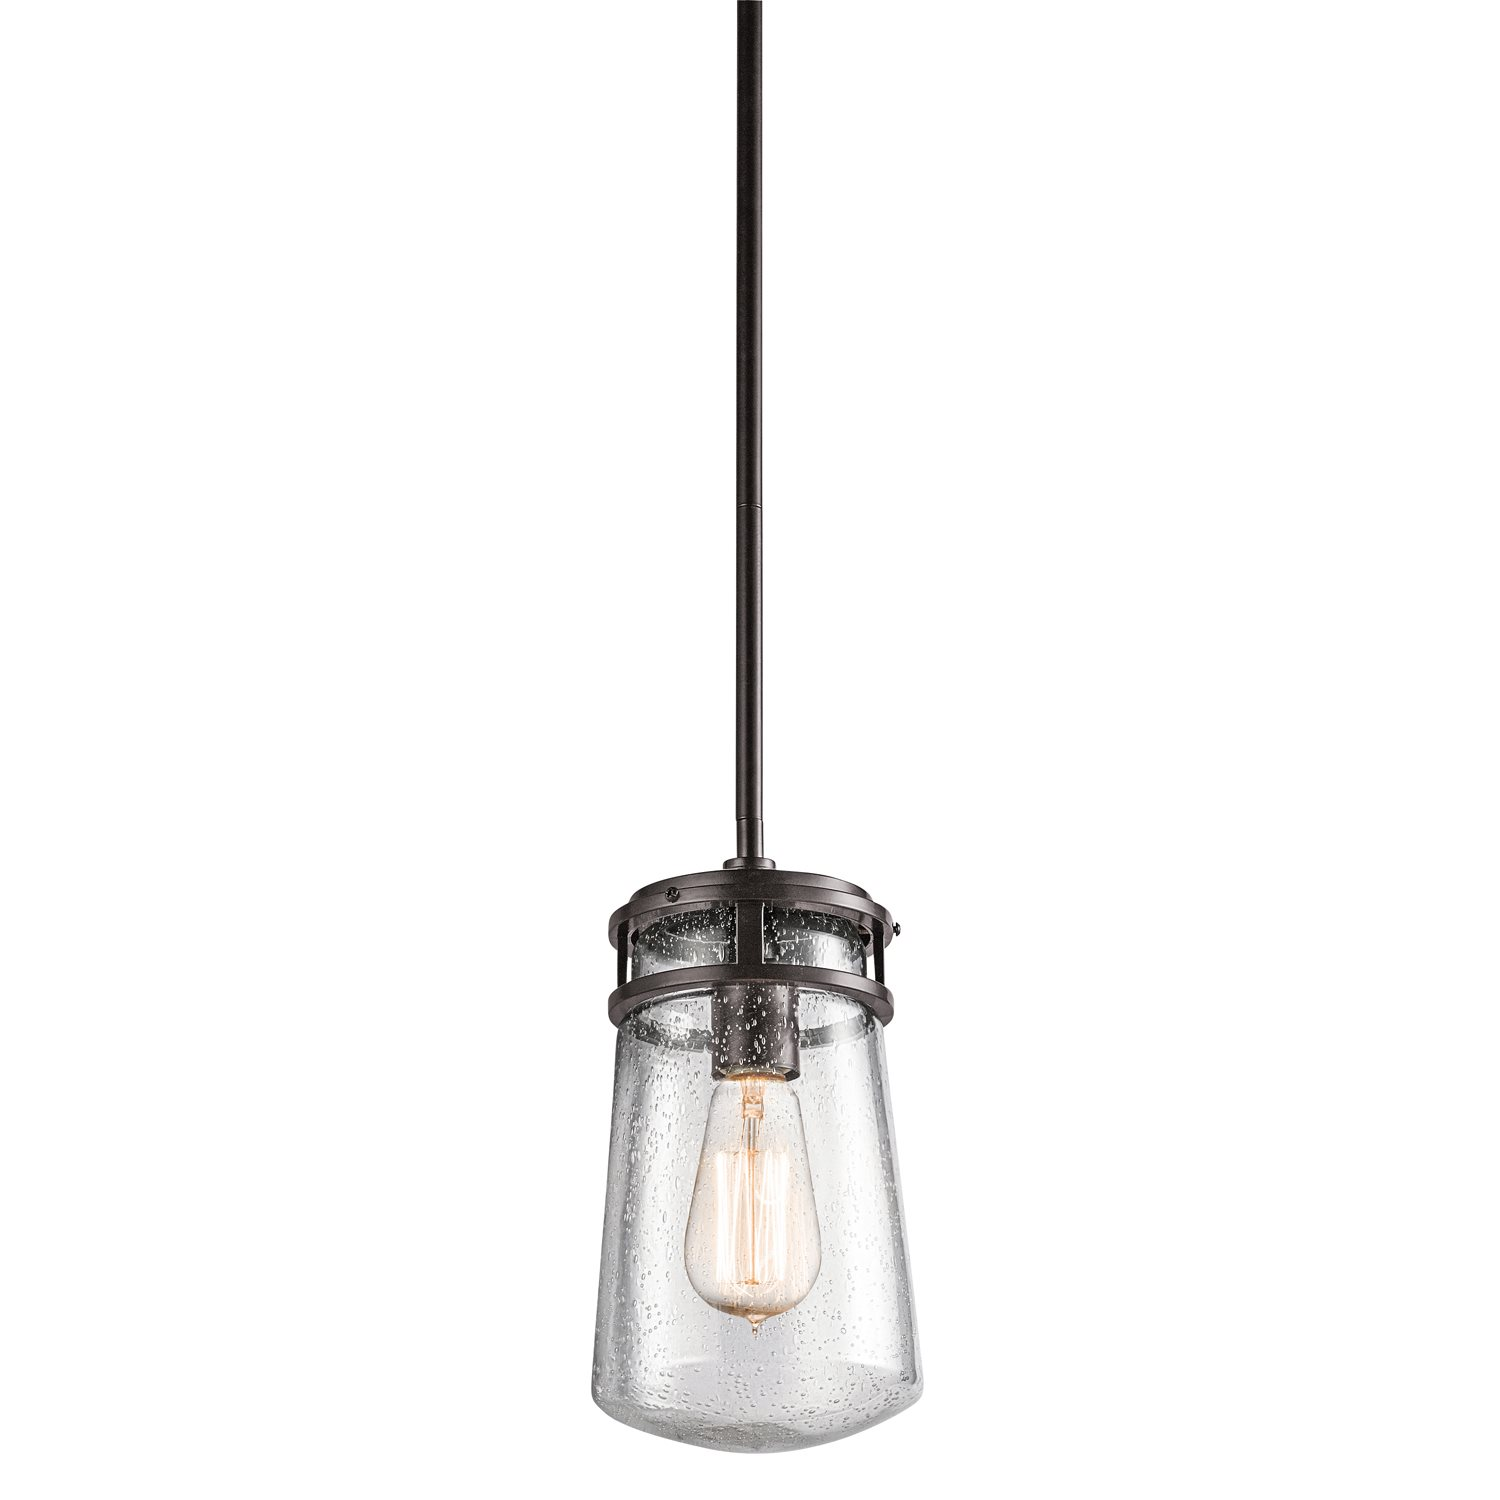 Kichler Lighting 49447AZ Lyndon Rustic / Lodge / Log Cabin